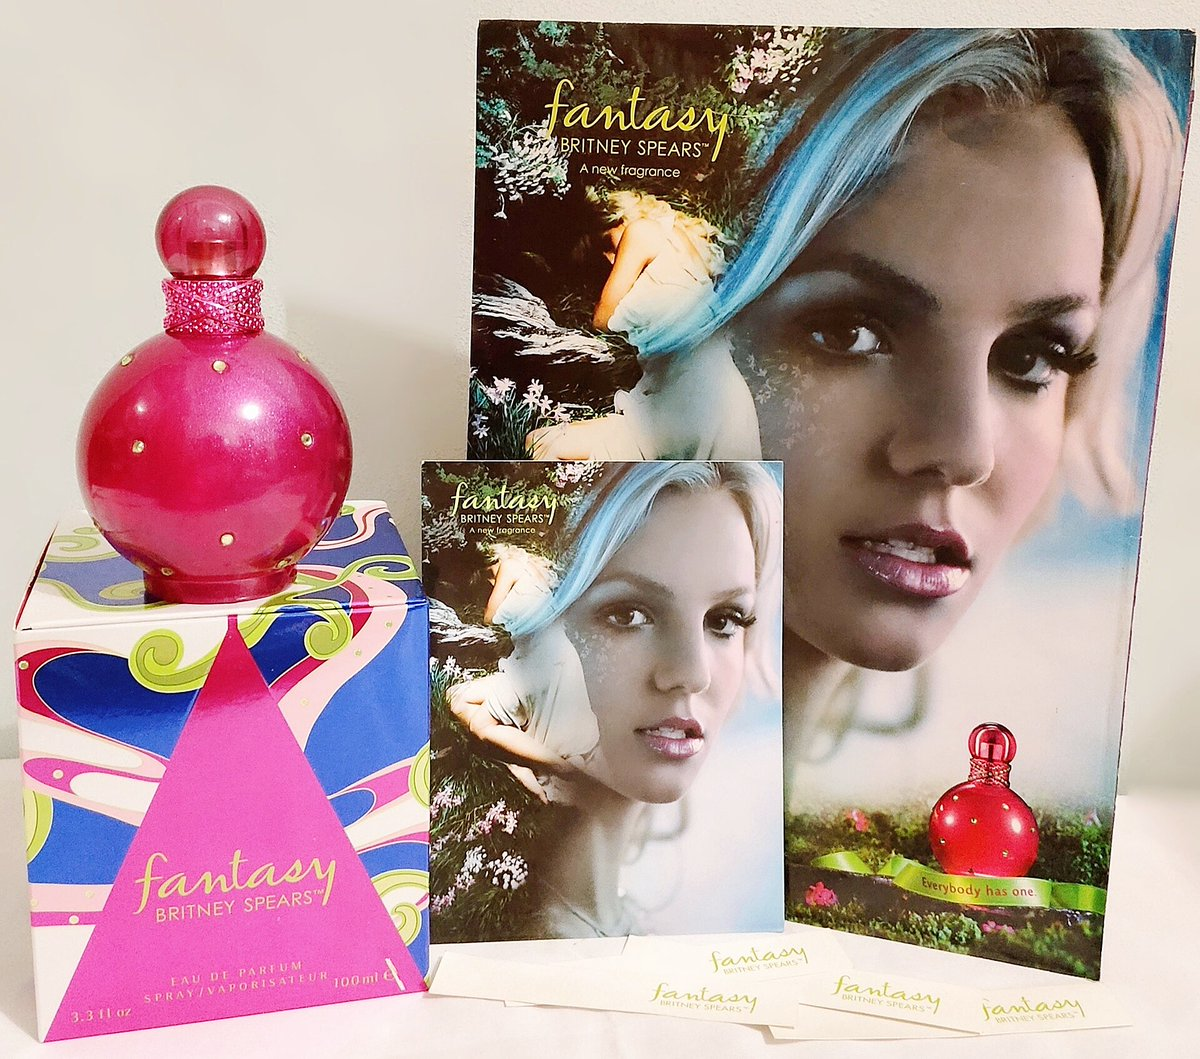 """""""Fantasy"""" is a women'sfragranceand fragrance line by @britneyspearsand@elizabetharden . Fantasy, the perfume, is the second perfume to be endorsed byBritney Spears after """"Curious"""". It was released in the US 15 Years Ago on September 15, 2005.  #britneyspears https://t.co/62x33sQhjb"""